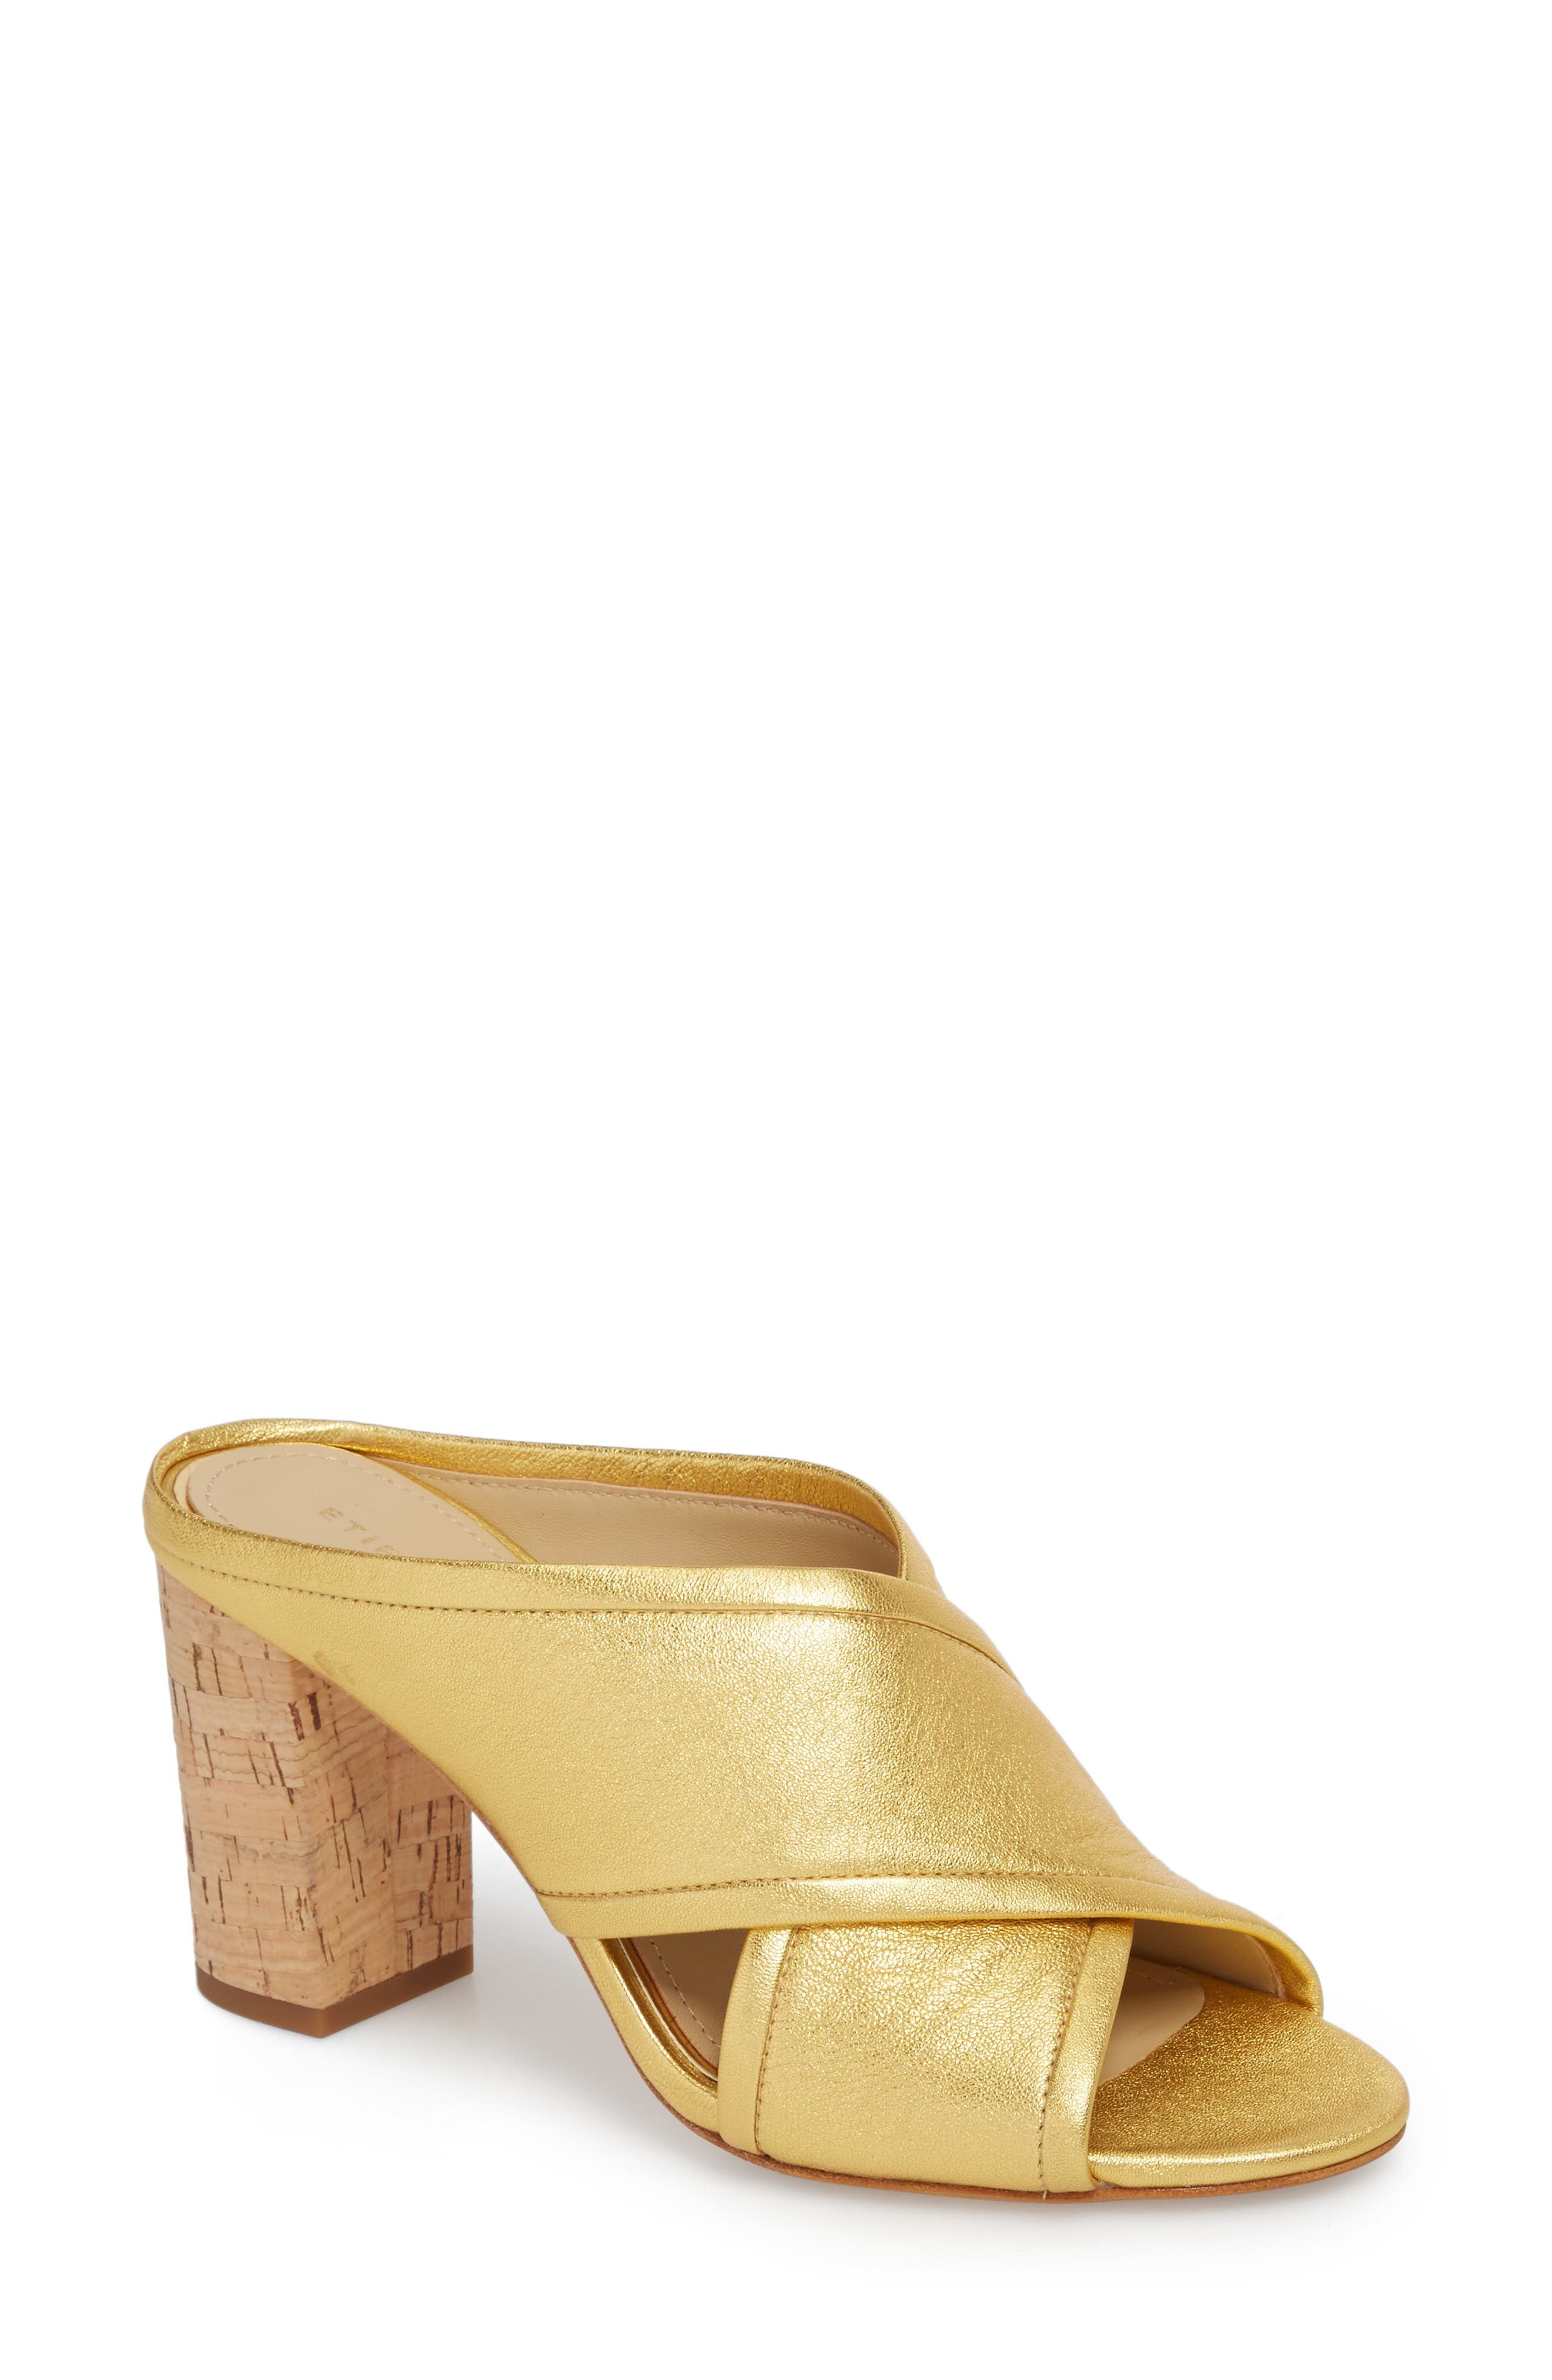 Lido Sandal,                         Main,                         color, Gold Leather